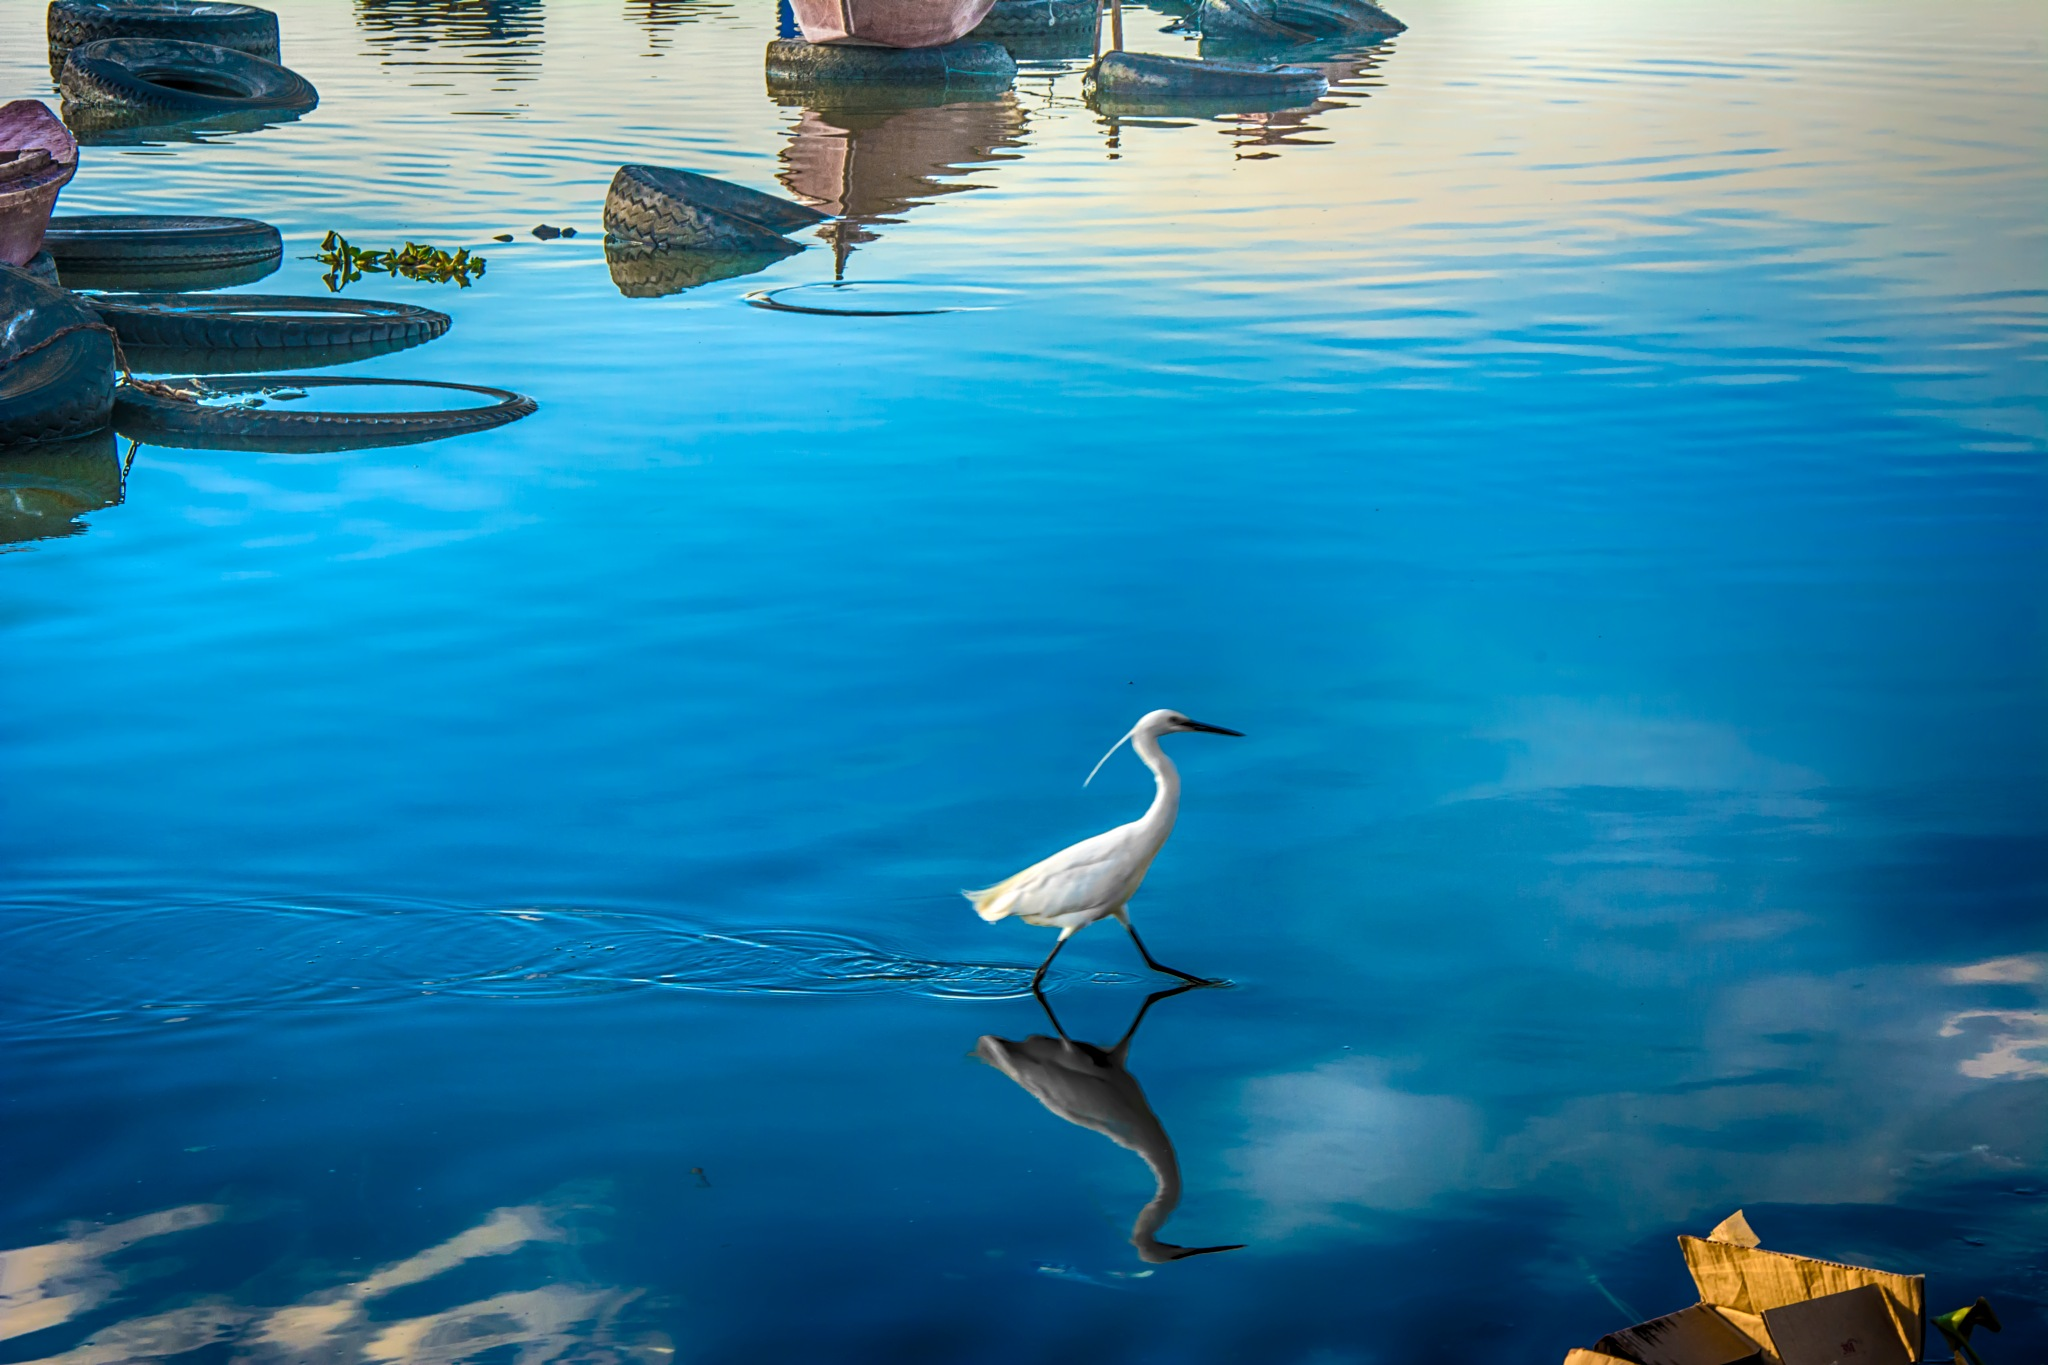 bird on water by Mohamed T-Derbala